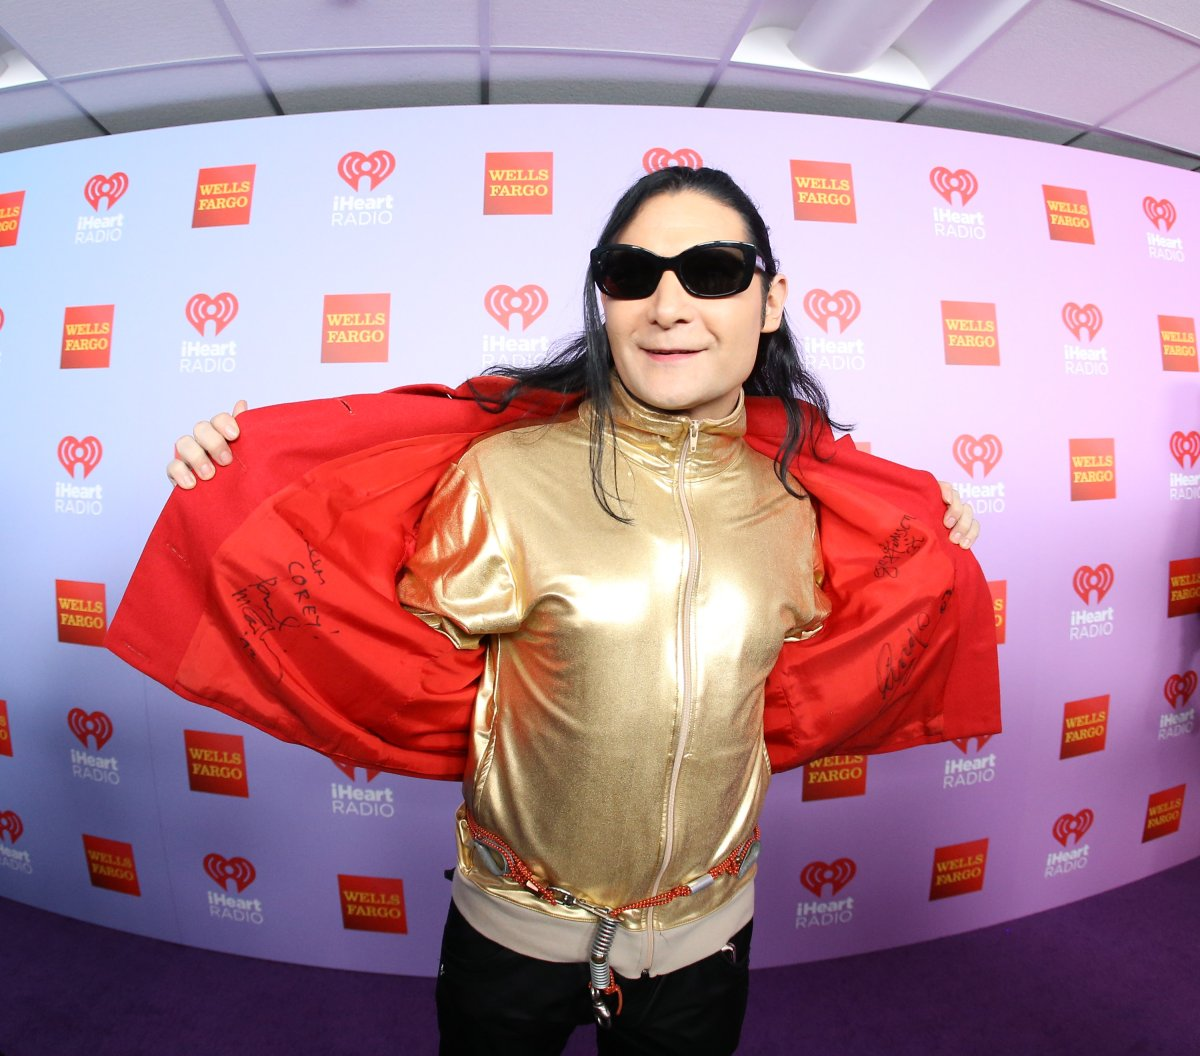 Corey Feldman shows off his autographed jacket of Paul McCartney, Ringo Starr and  George Harrison arrives at the iHeart80s Party 2016 on February 20, 2016 in Inglewood, California.